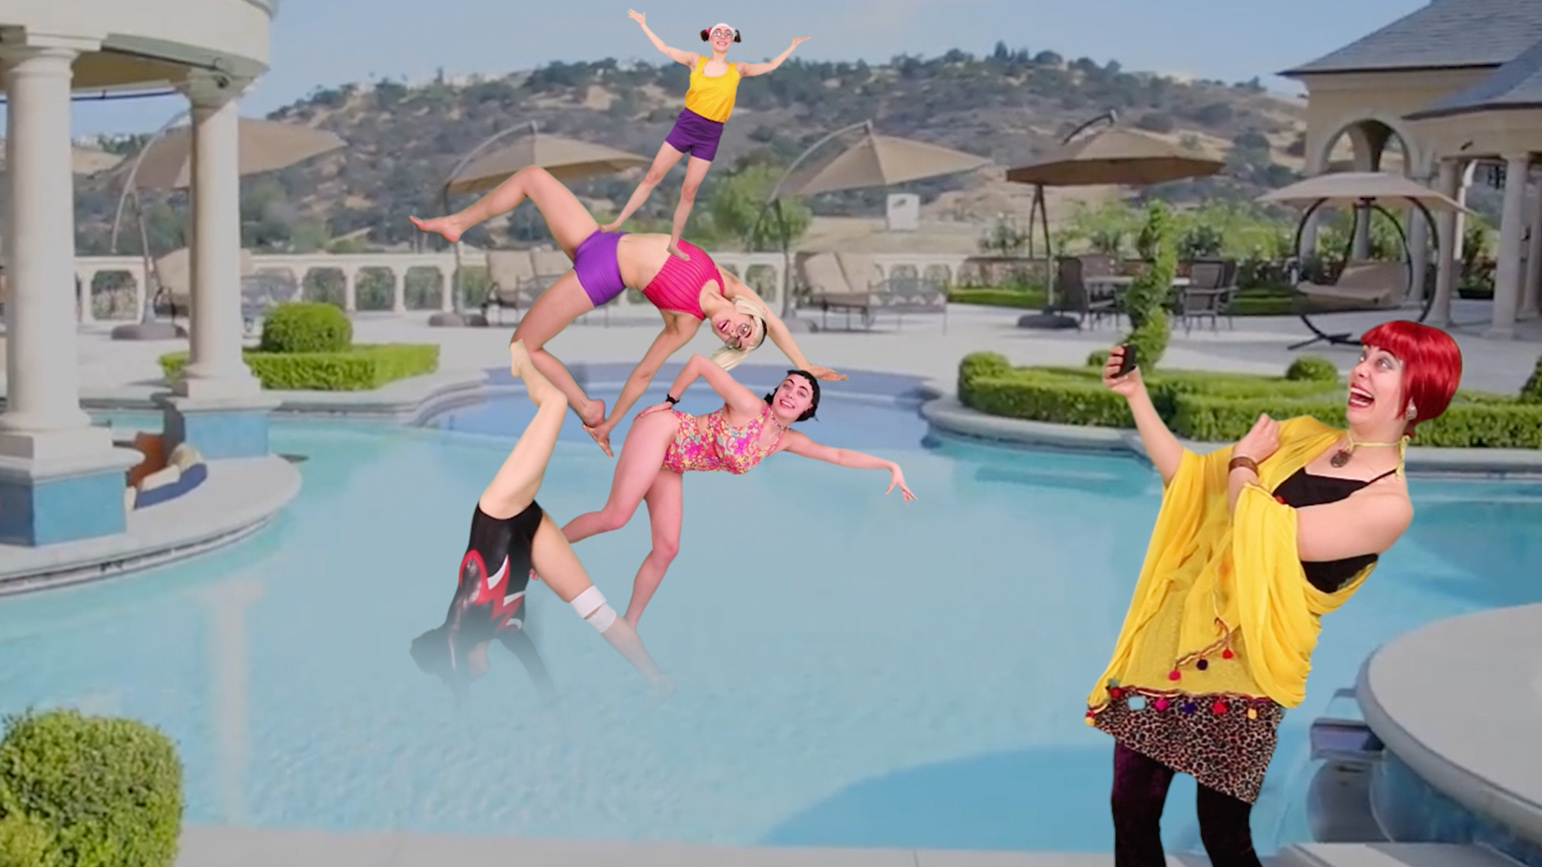 Collaged image of the same person taking a photograph in front of a pool of a group of five people performing an acrobatic move